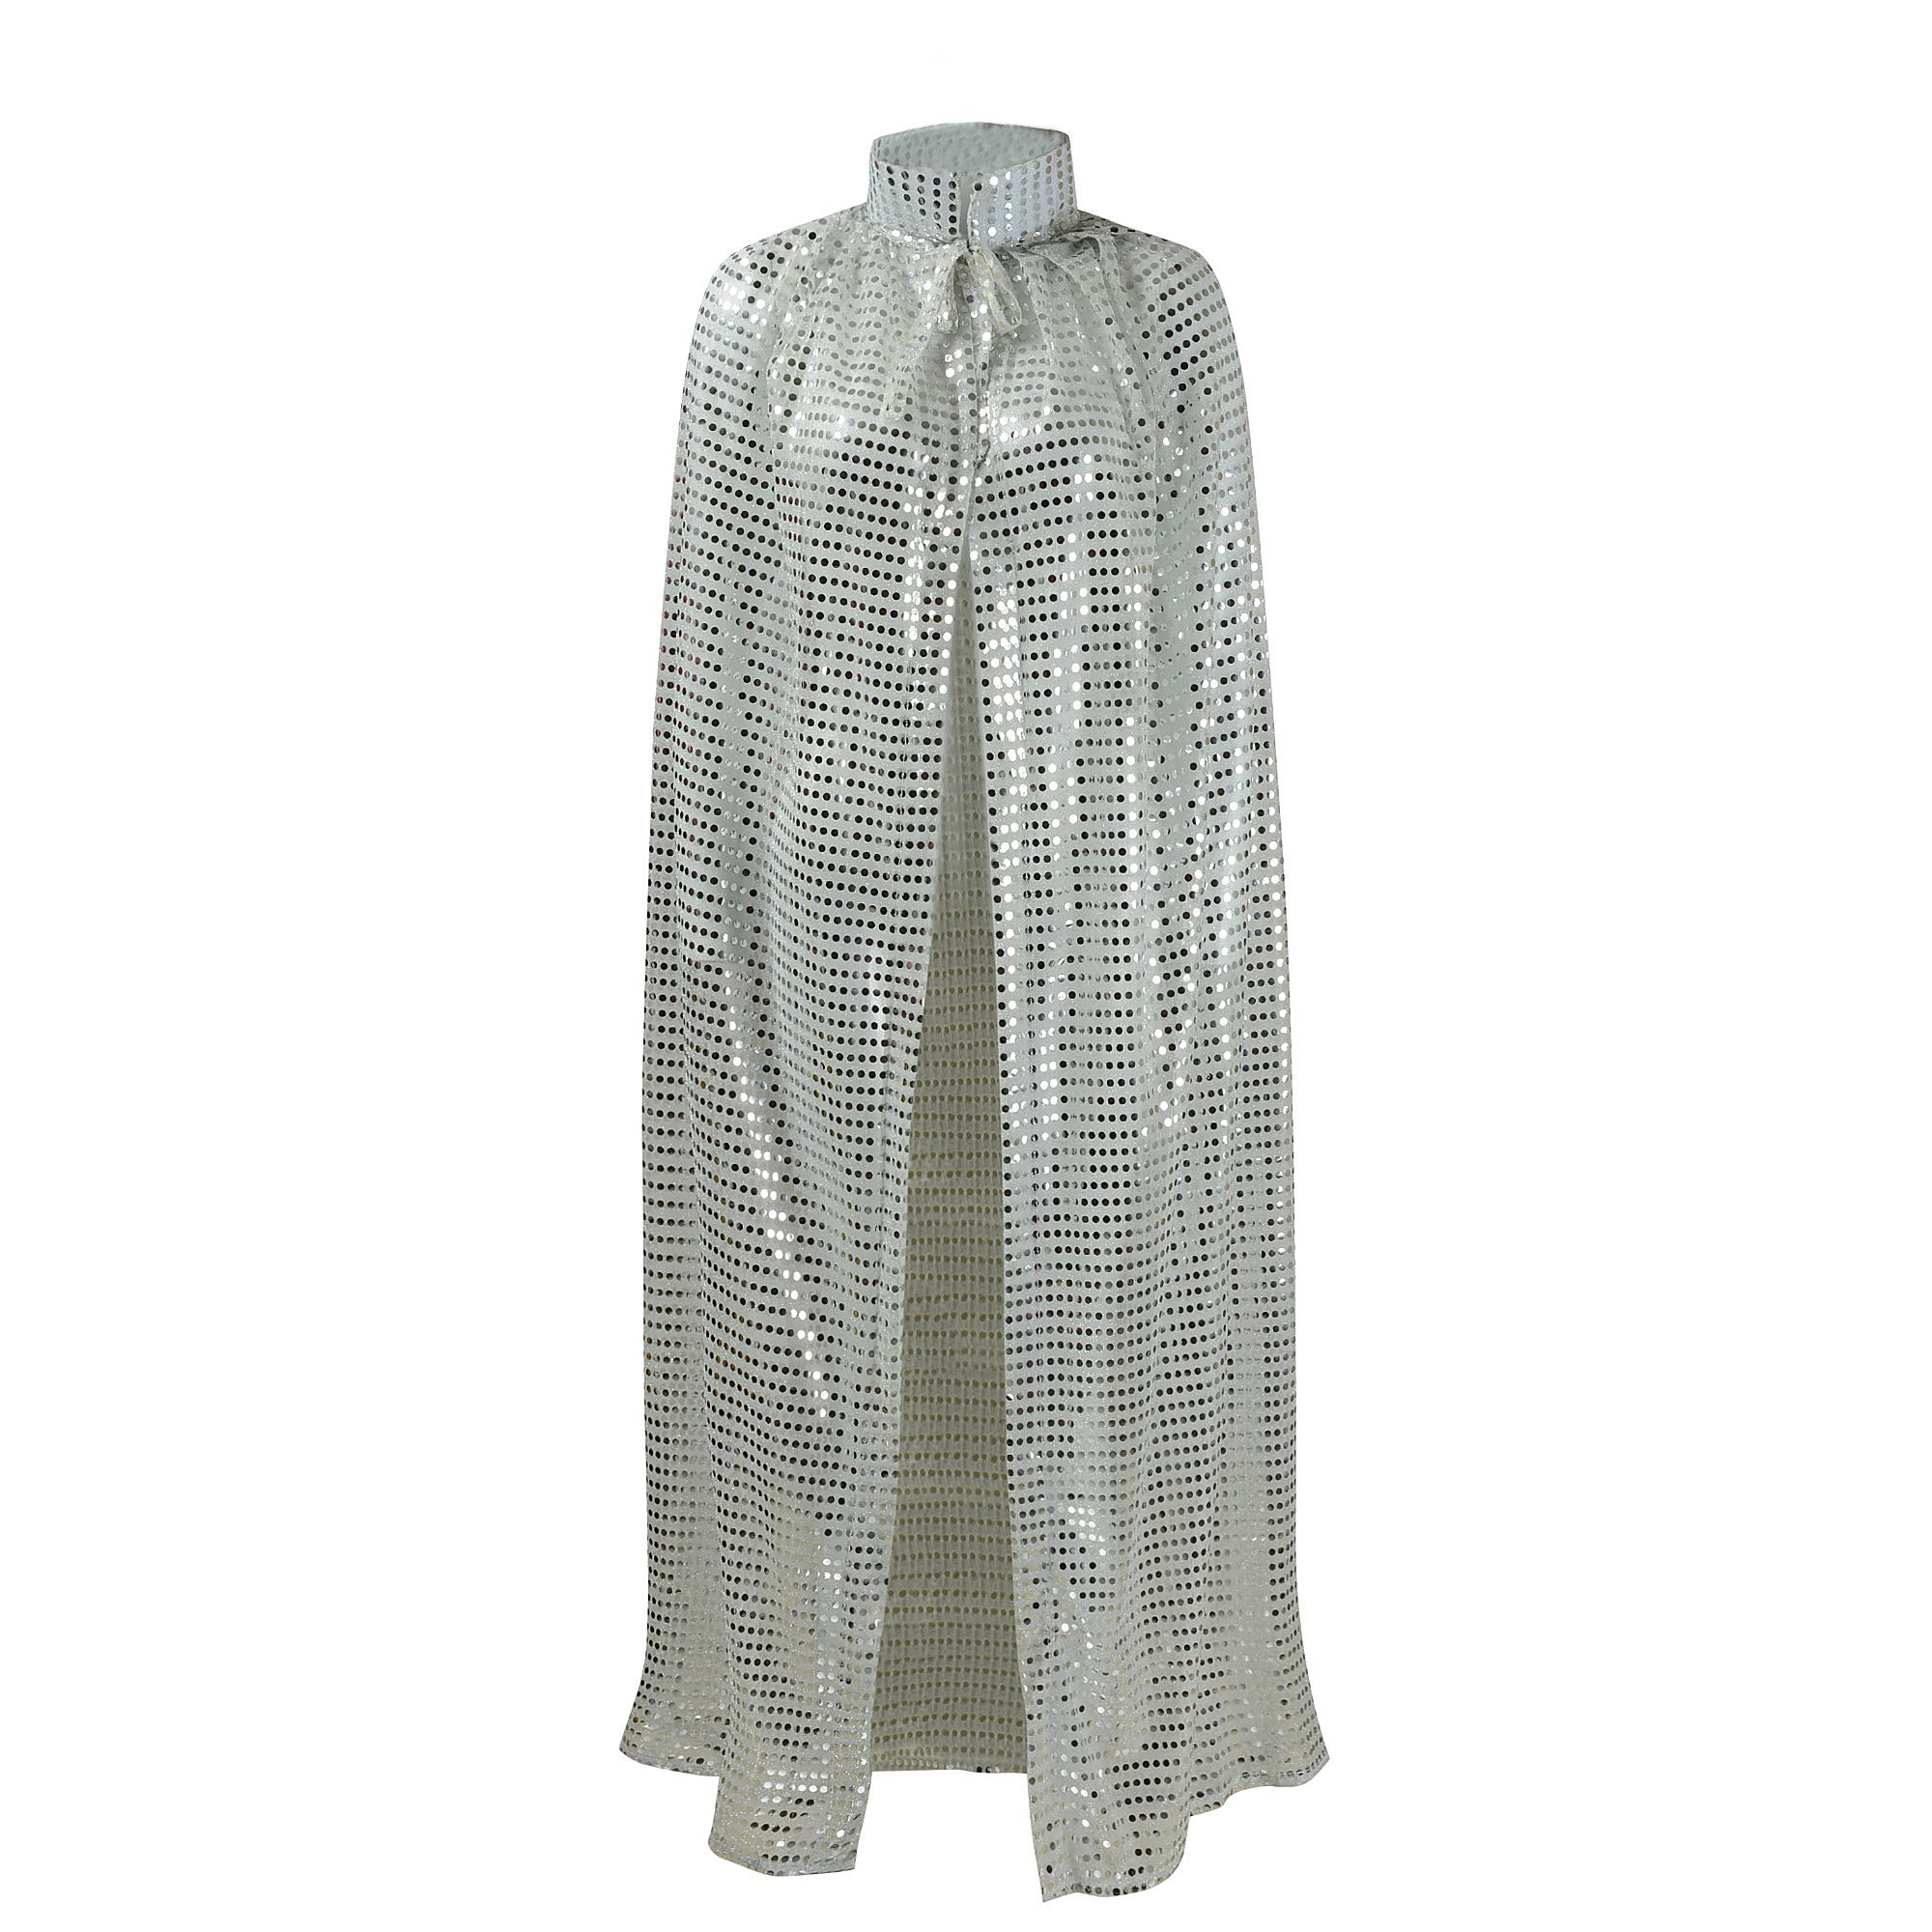 Ladies Cloaks Full Length Colored Sequins Goddess Cape Halloween Christmas Outerwear (Silver)